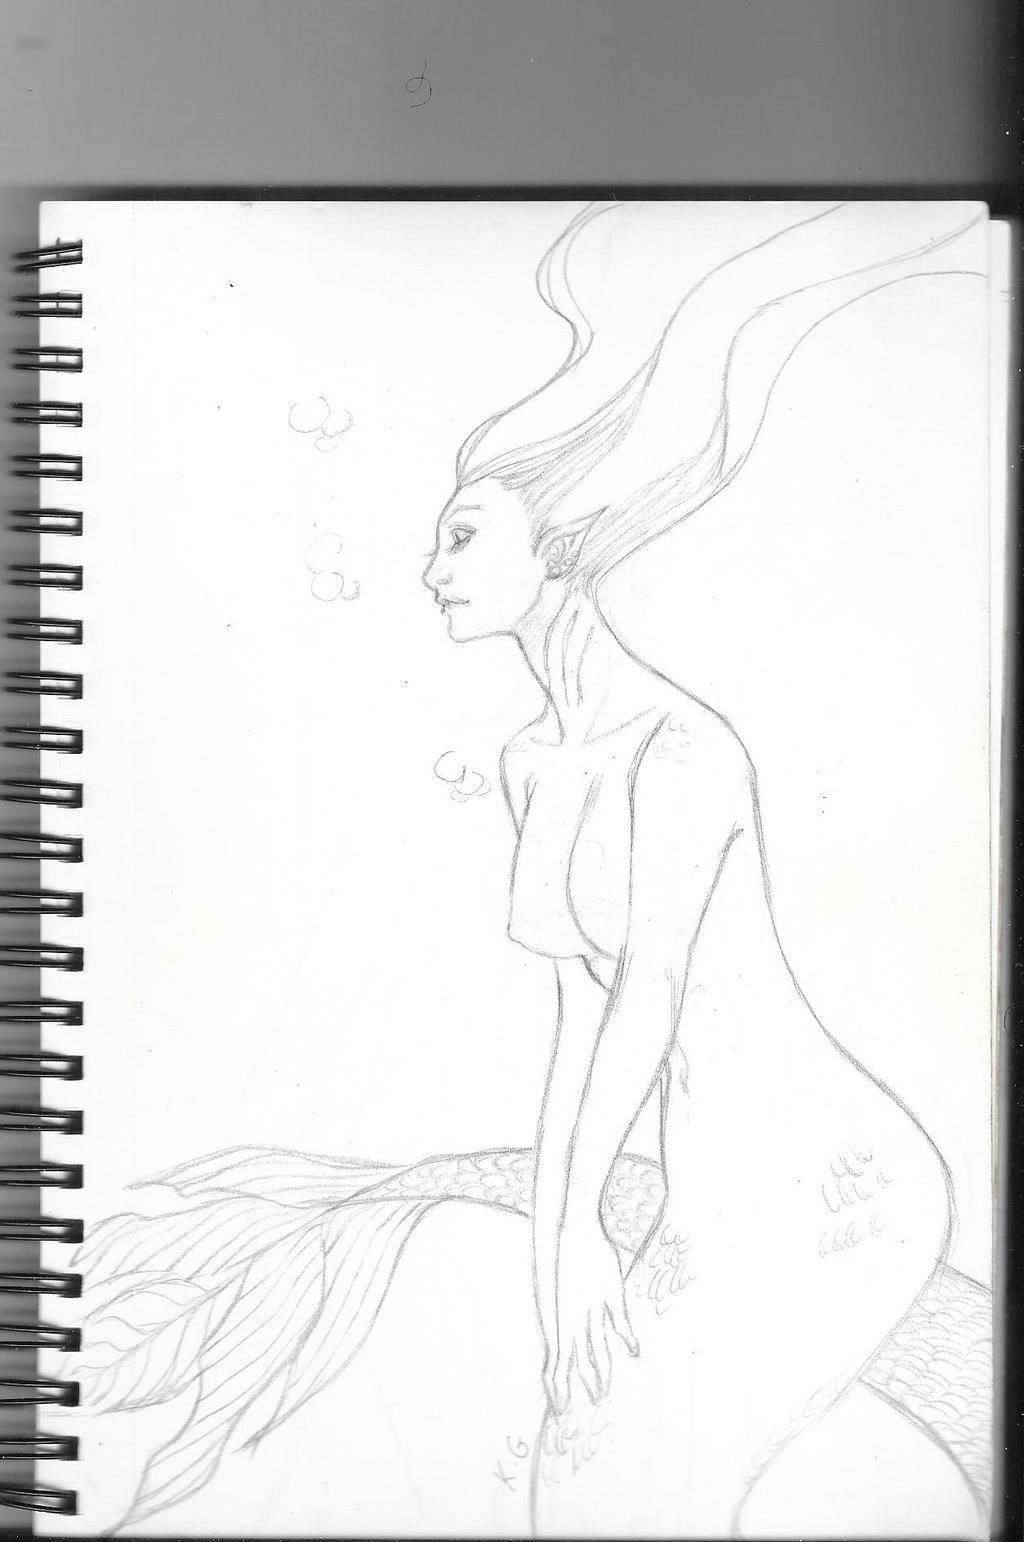 sketchbook 6: Mermay